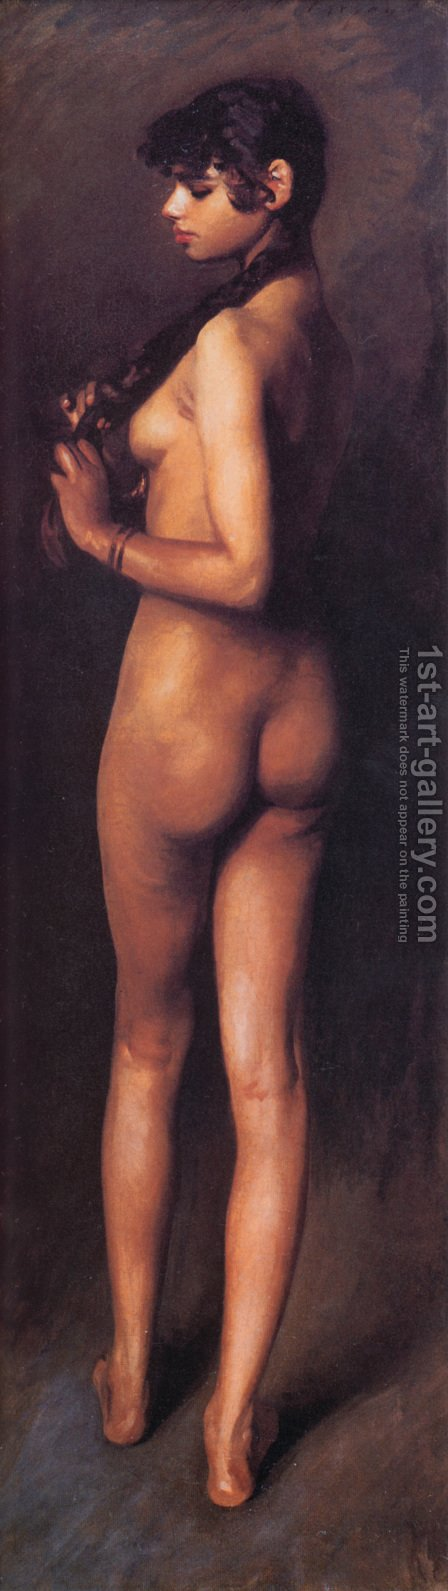 Sargent: Nude Egyptian Girl - reproduction oil painting